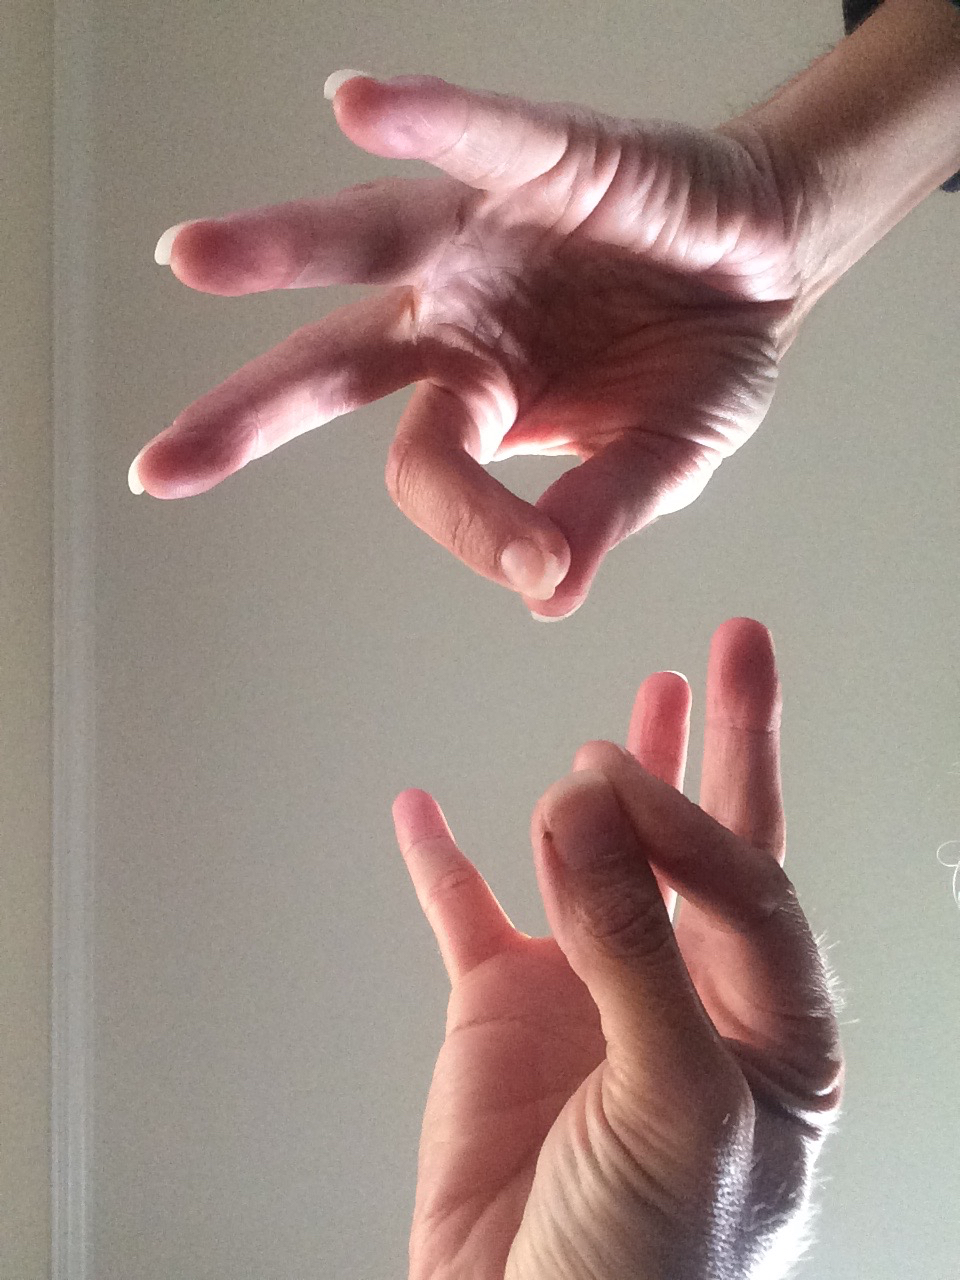 Image: Scribe's hands while she's on a walk on the treadmill 06 November 2015 15:23